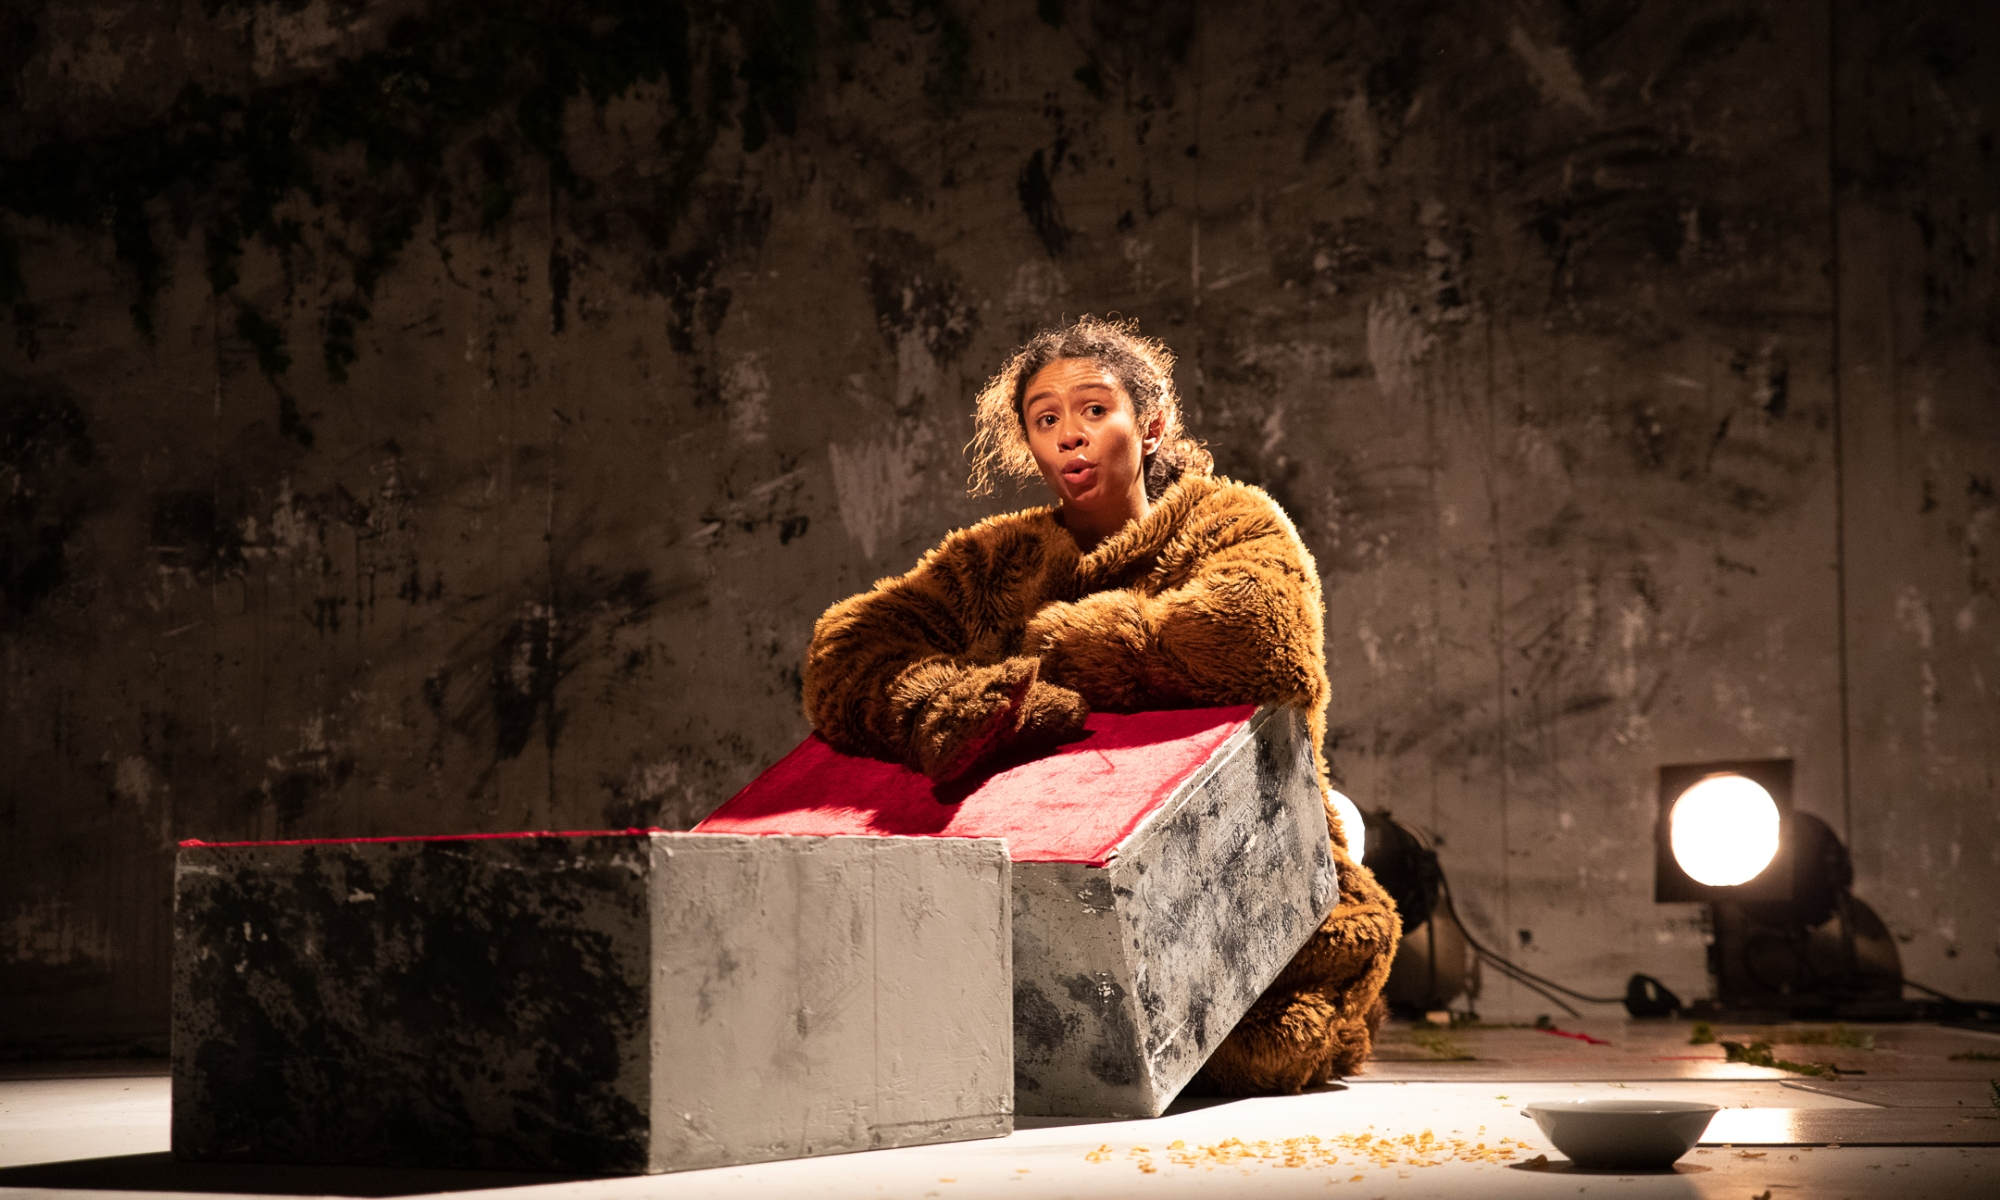 A women in a bear costume (except for the head) rest her hands on a stone block. Another stone block is in front of this one. To the left on the floor is a bowl of cereal, with several flakes on the floor next to the bowl.